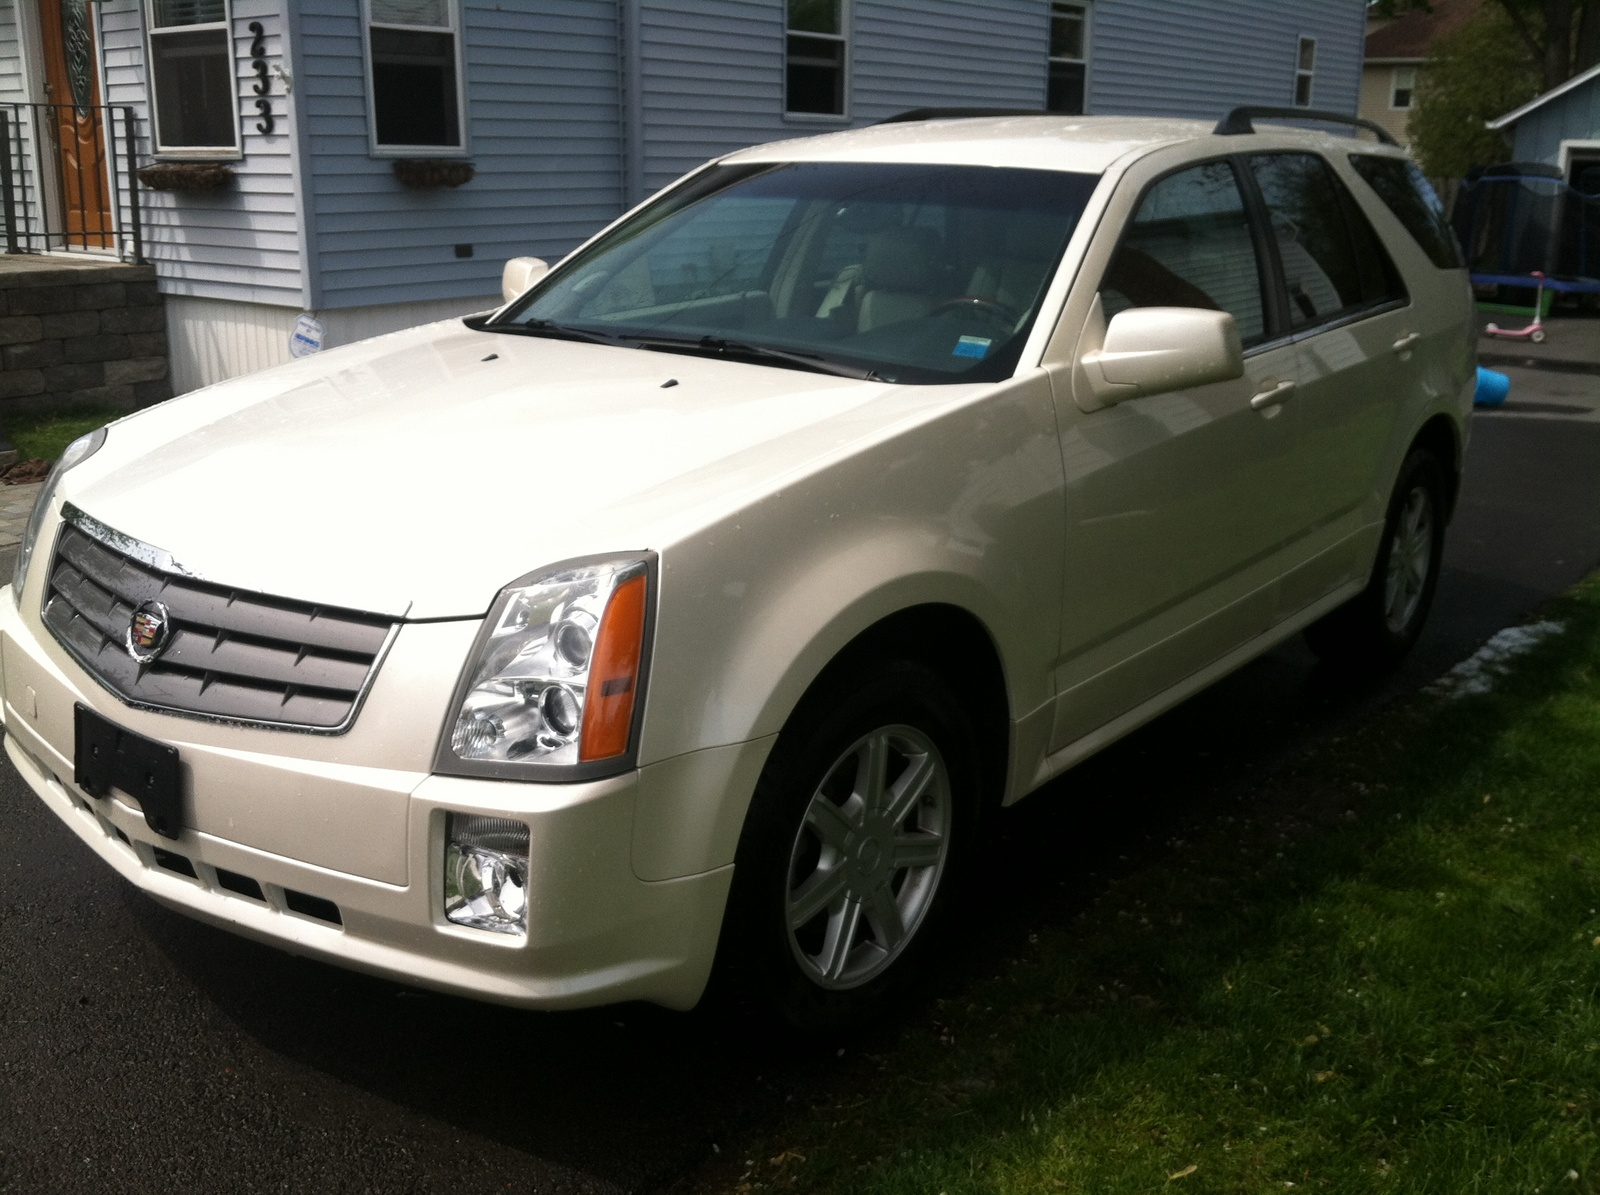 Picture of 2004 Cadillac SRX V6